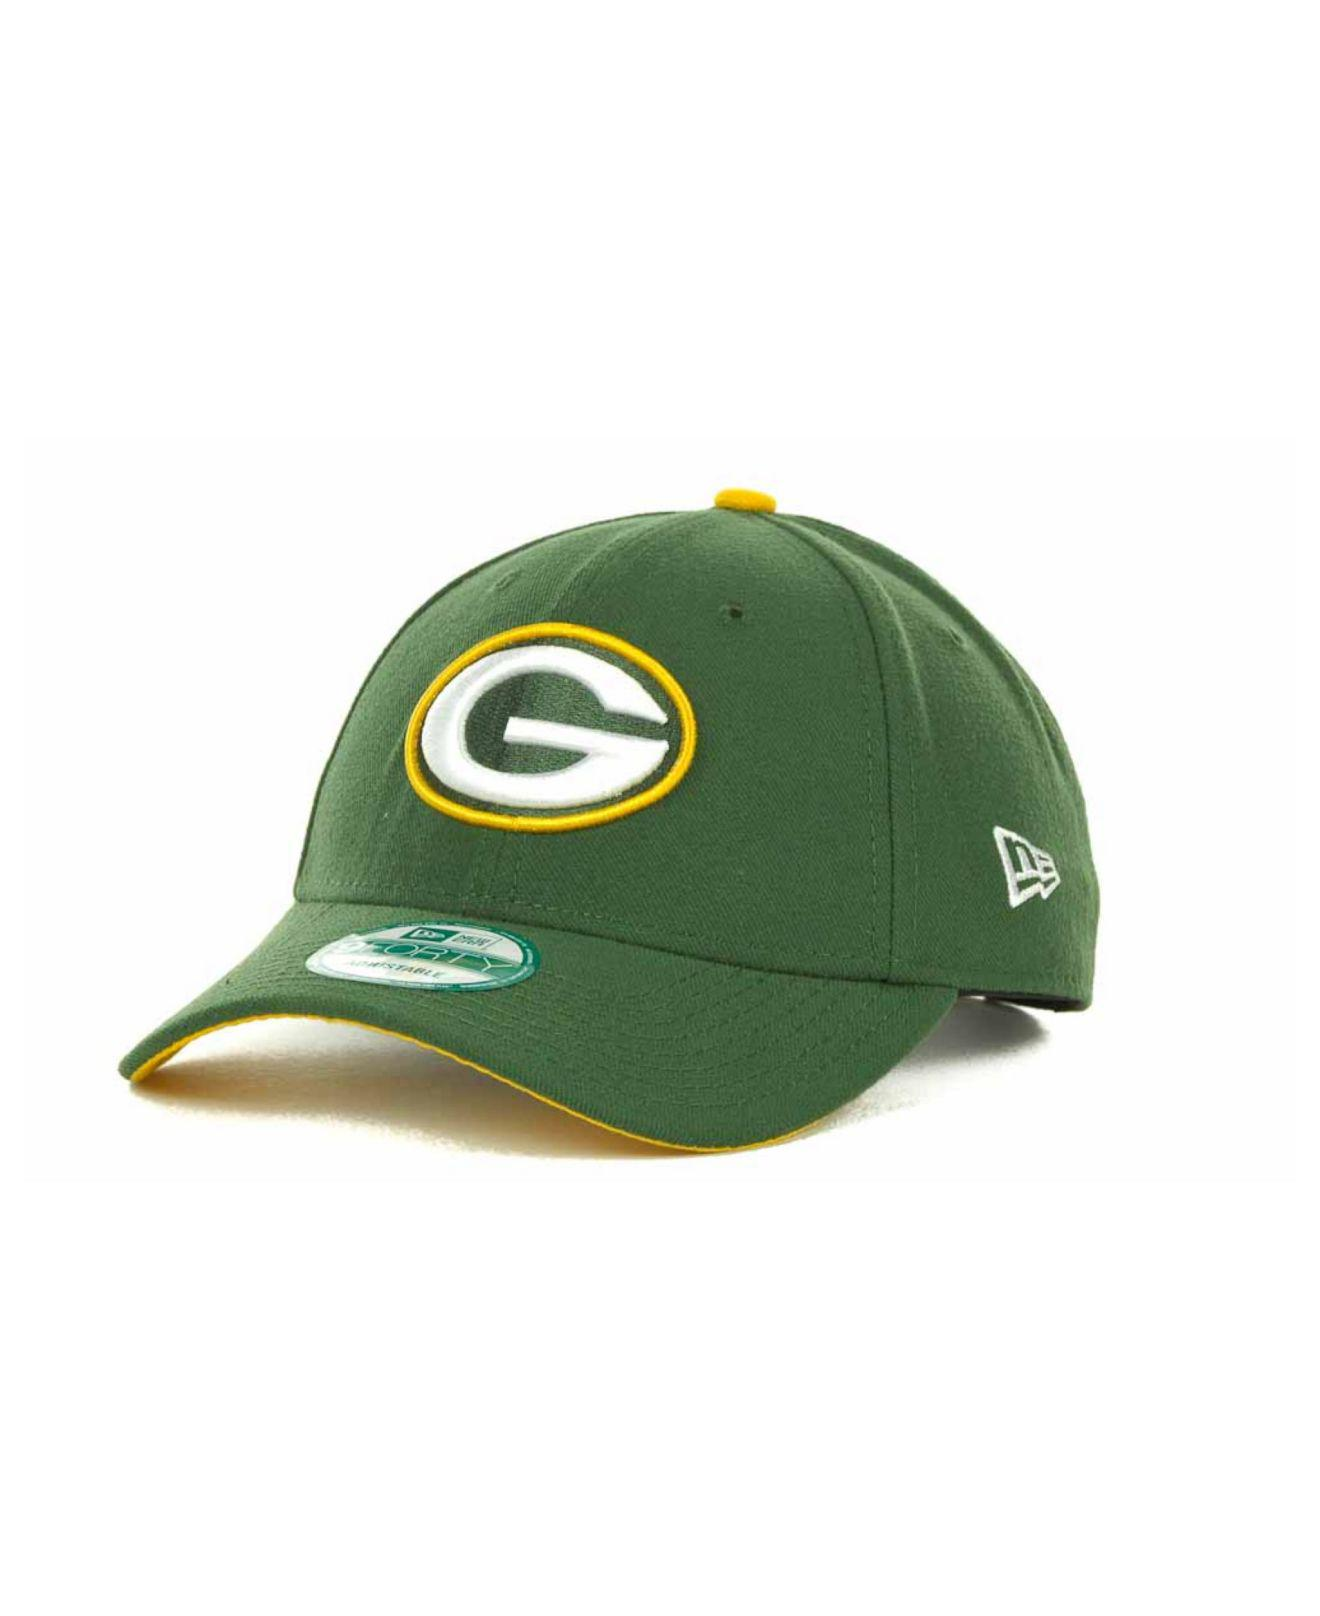 627ad6818d9 Lyst - Ktz Green Bay Packers First Down 9forty Cap in Green for Men